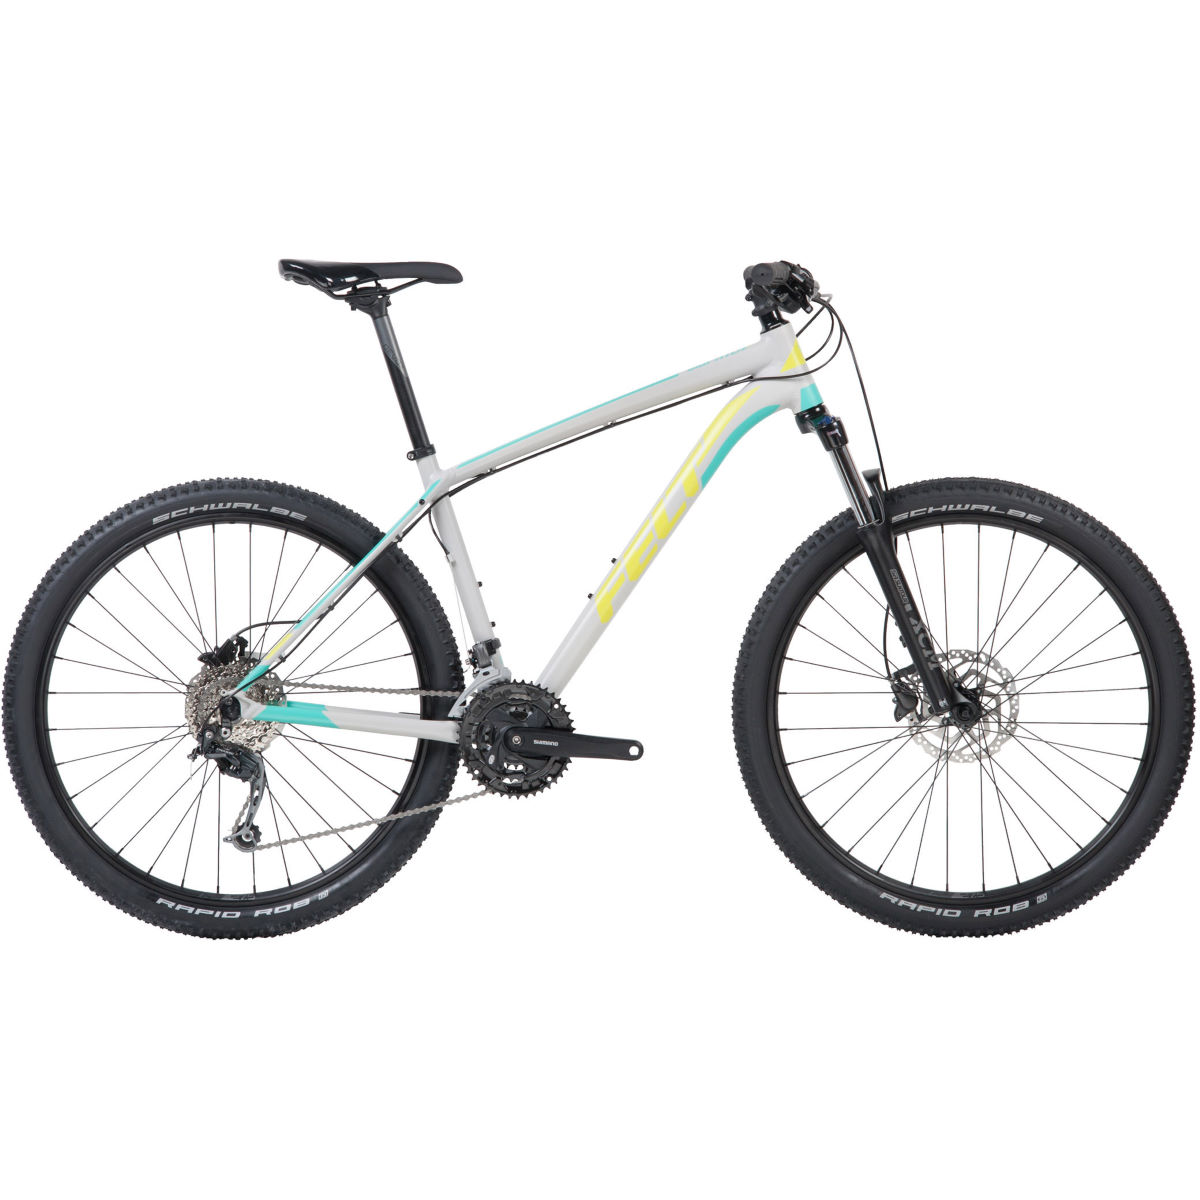 Felt Dispatch 7/60 (2018) XC Hardtail Bike - Bicicletas de MTB rígidas